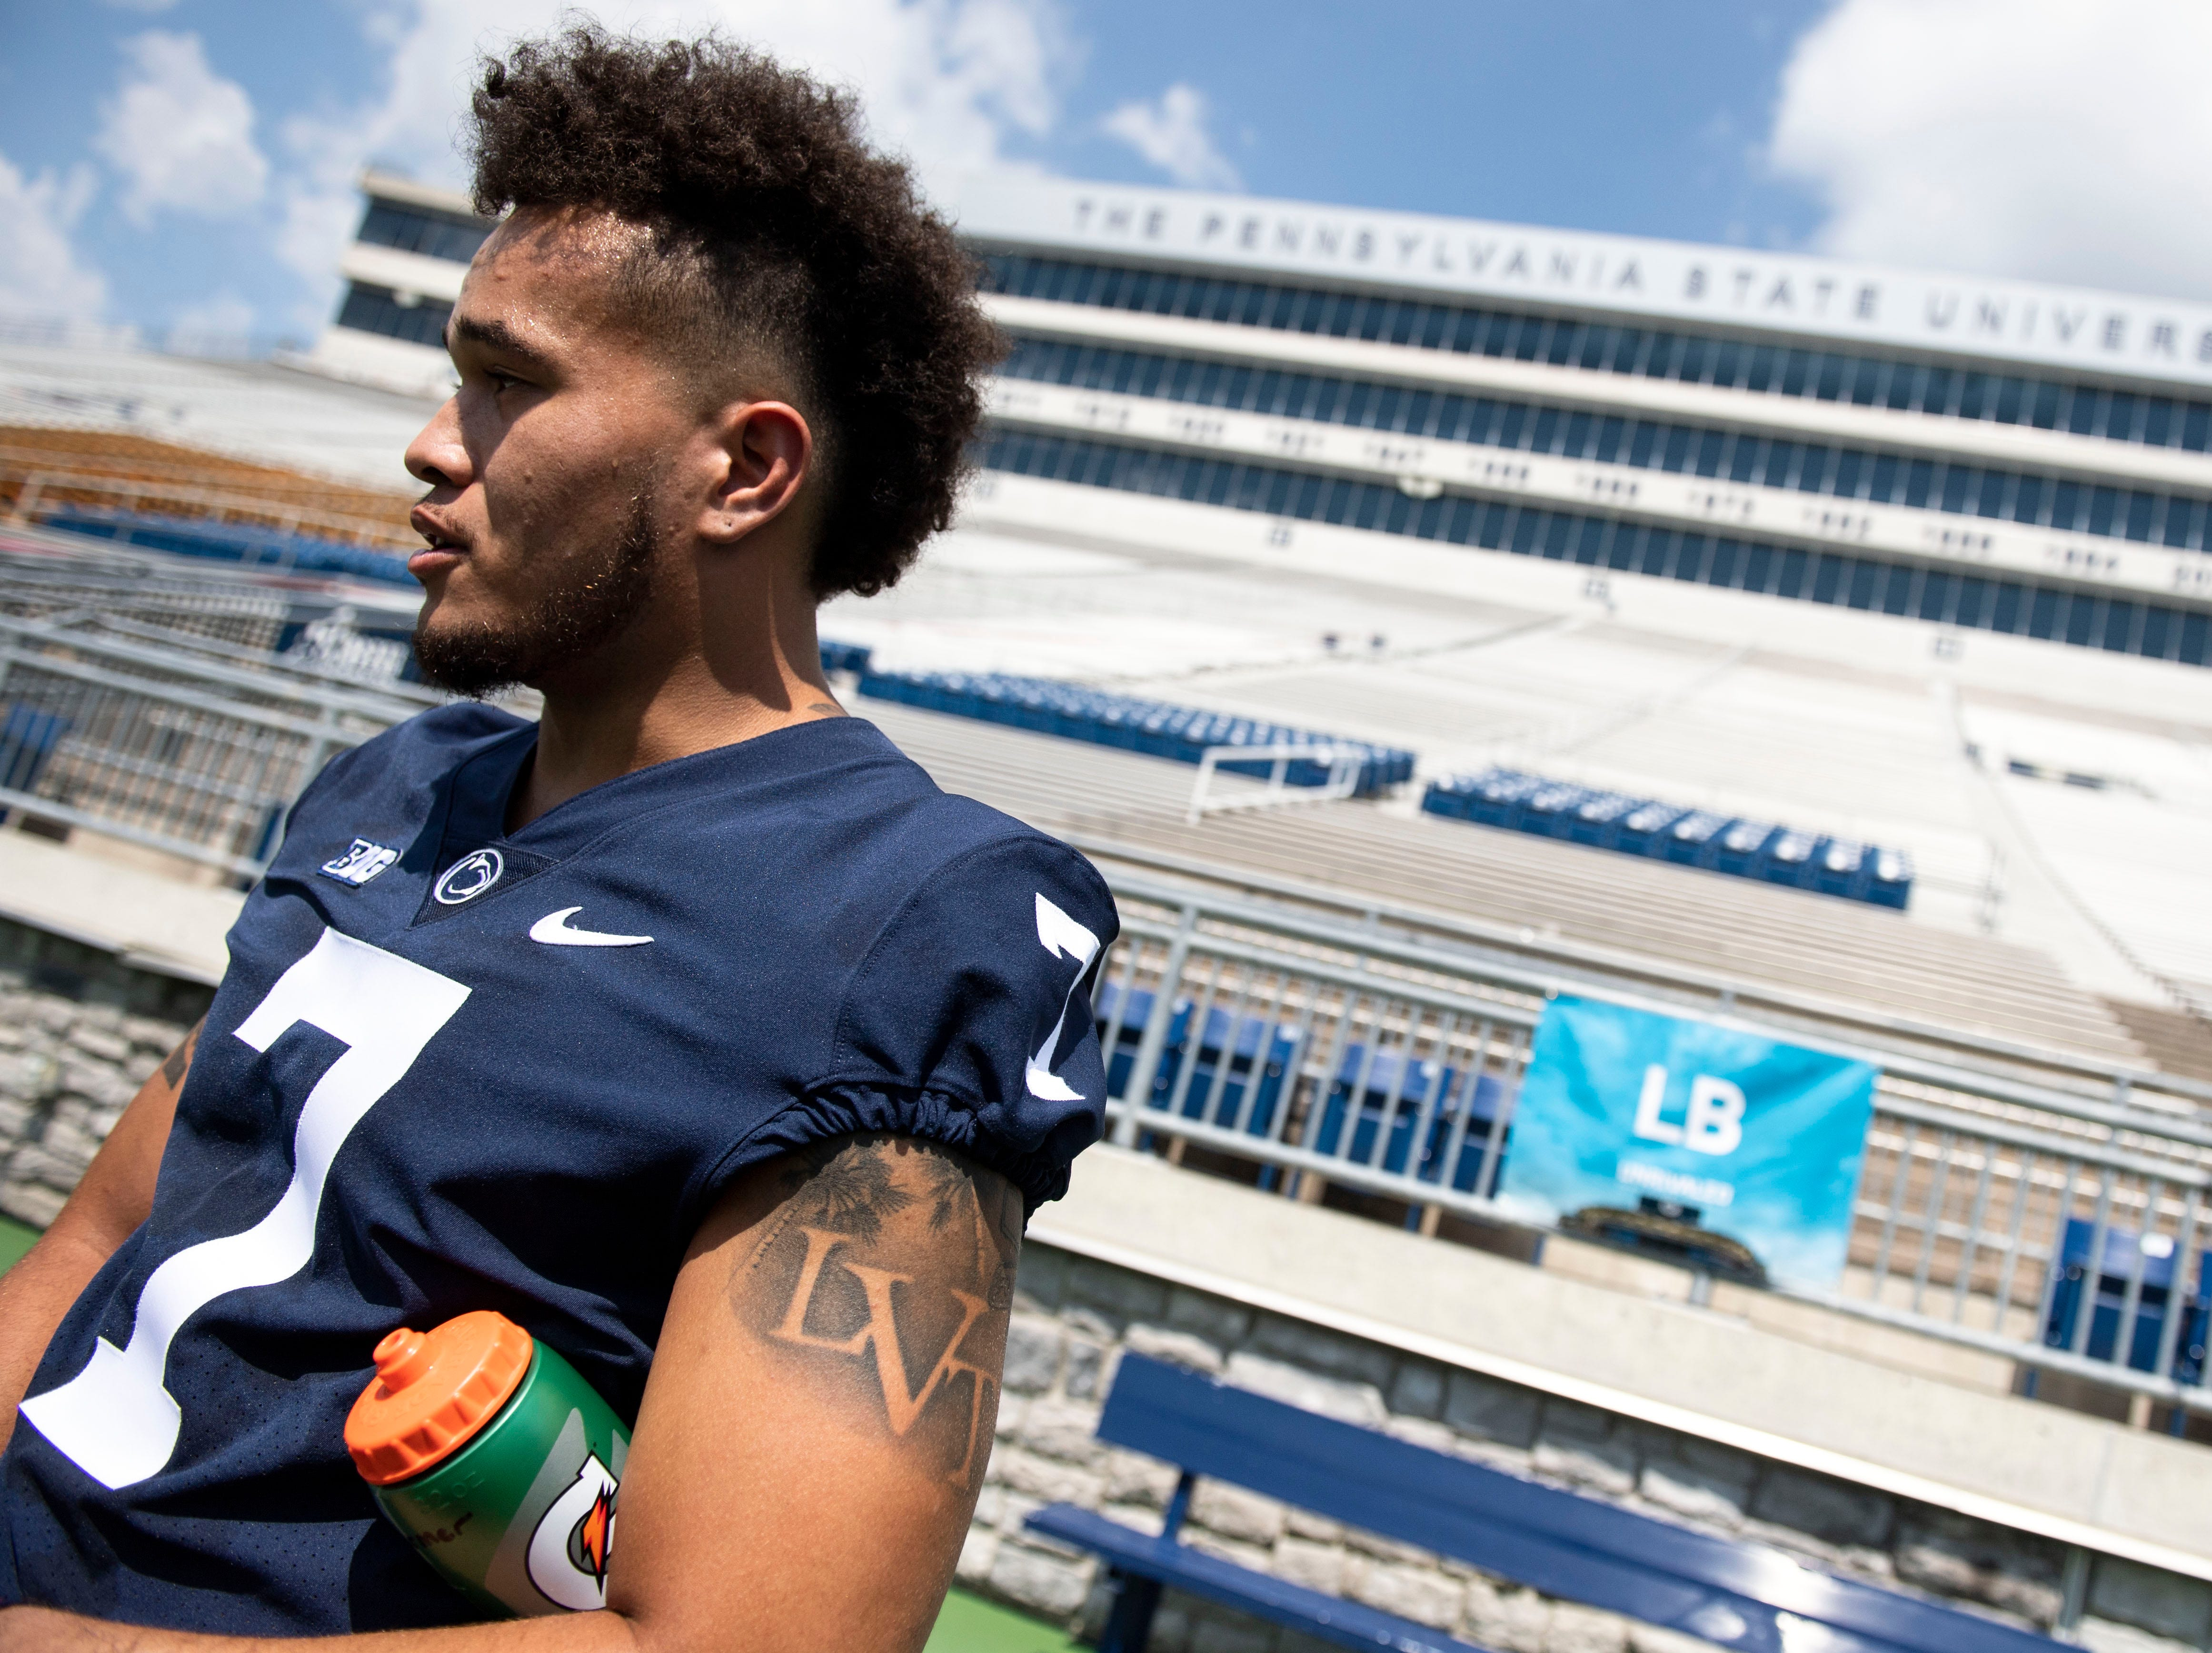 Line backer Koa Farmer speaks with reporters during media day at Beaver Stadium on Saturday, August 4, 2018.